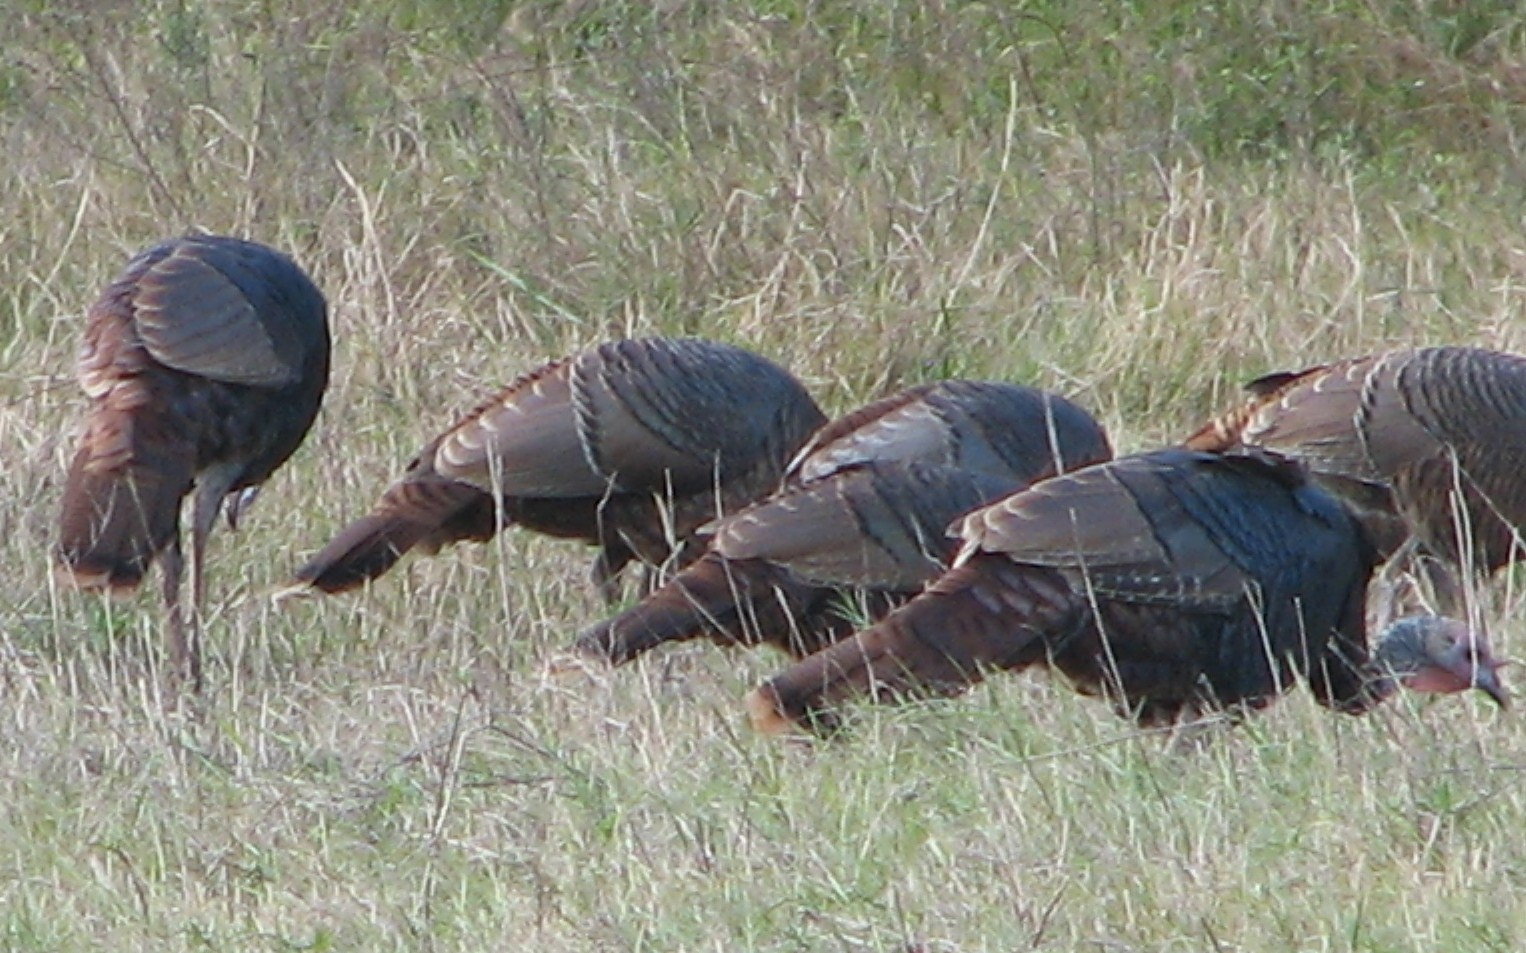 an analysis of the wild turkey the largest game bird in north america 20 fun facts about wild turkeys share the wild turkey is one of only two birds native to north america that has been regularly domesticated the wild turkey is the official game bird of alabama, massachusetts and south carolina.